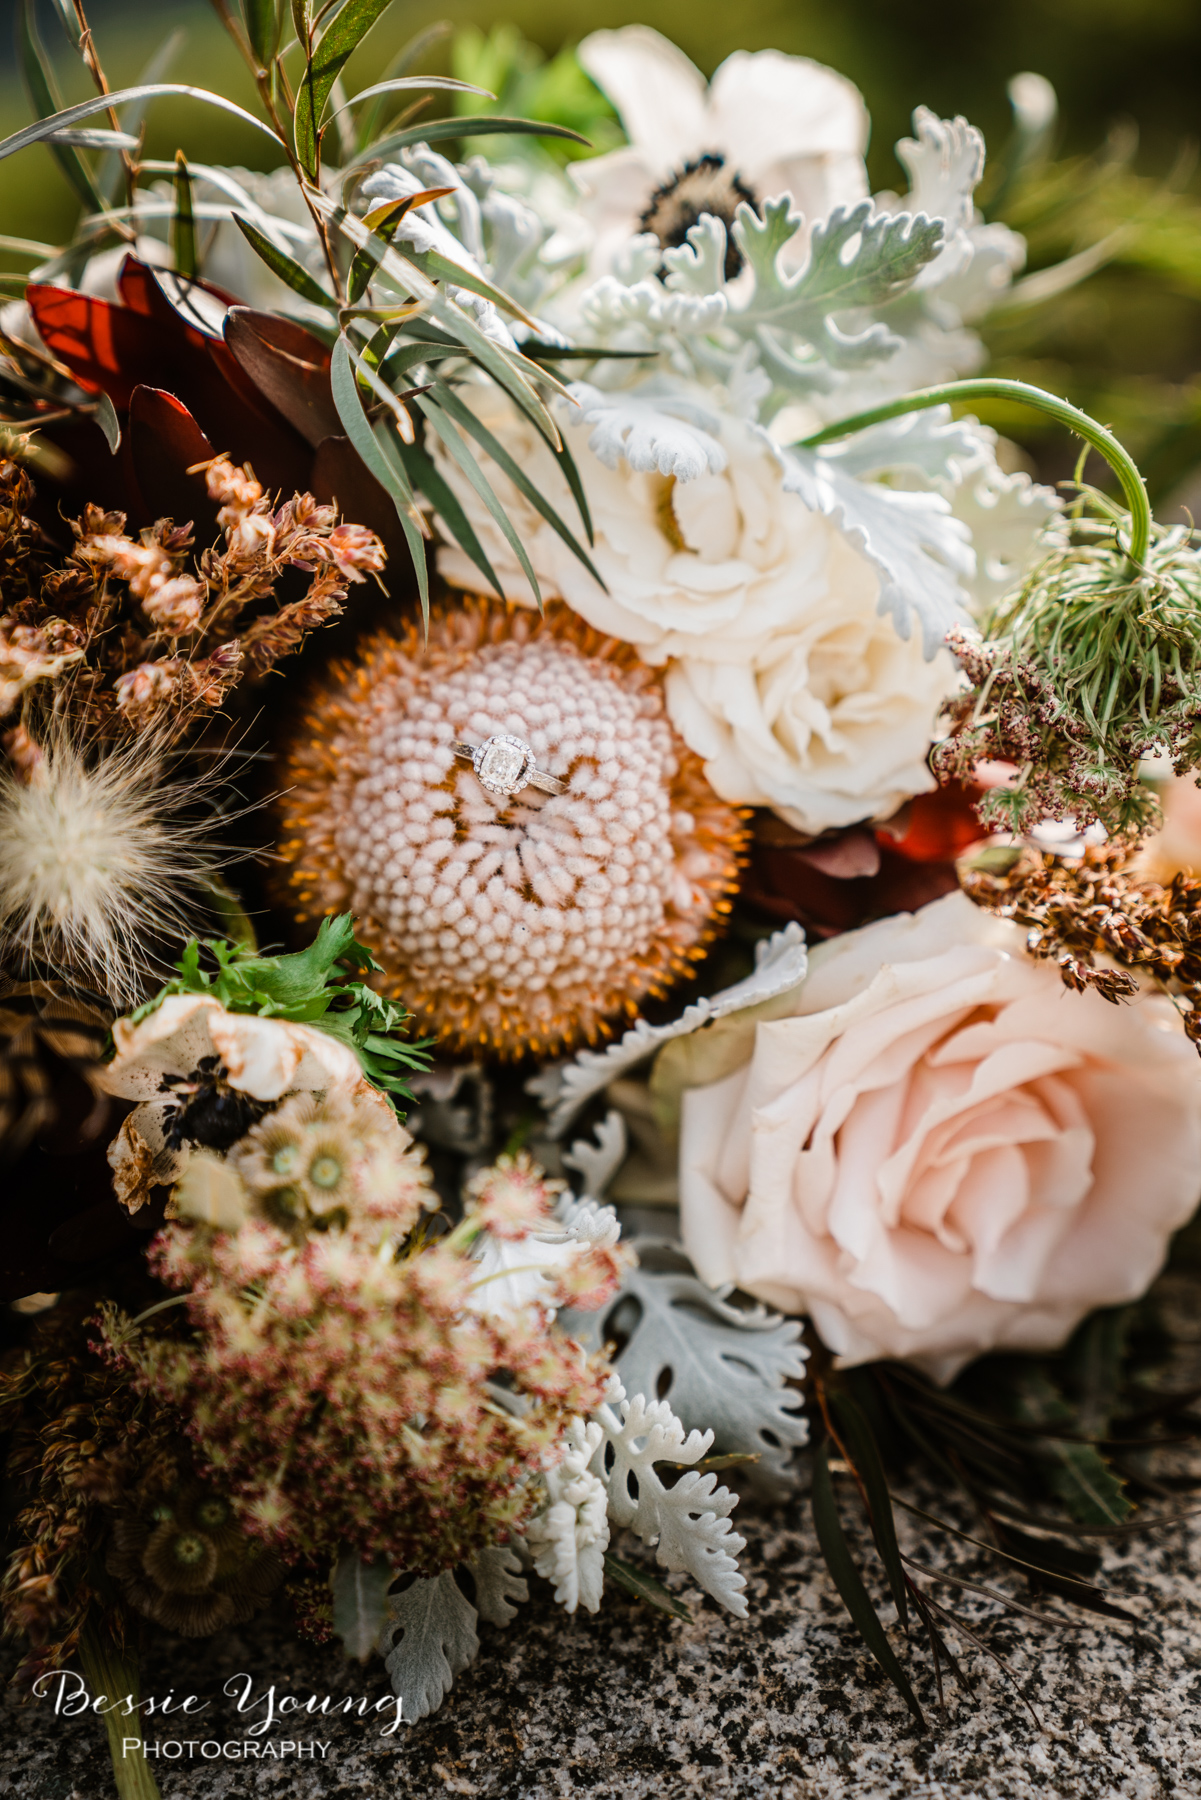 Wedding bouquet ideas  - by Bessie Young Photography-9.jpg